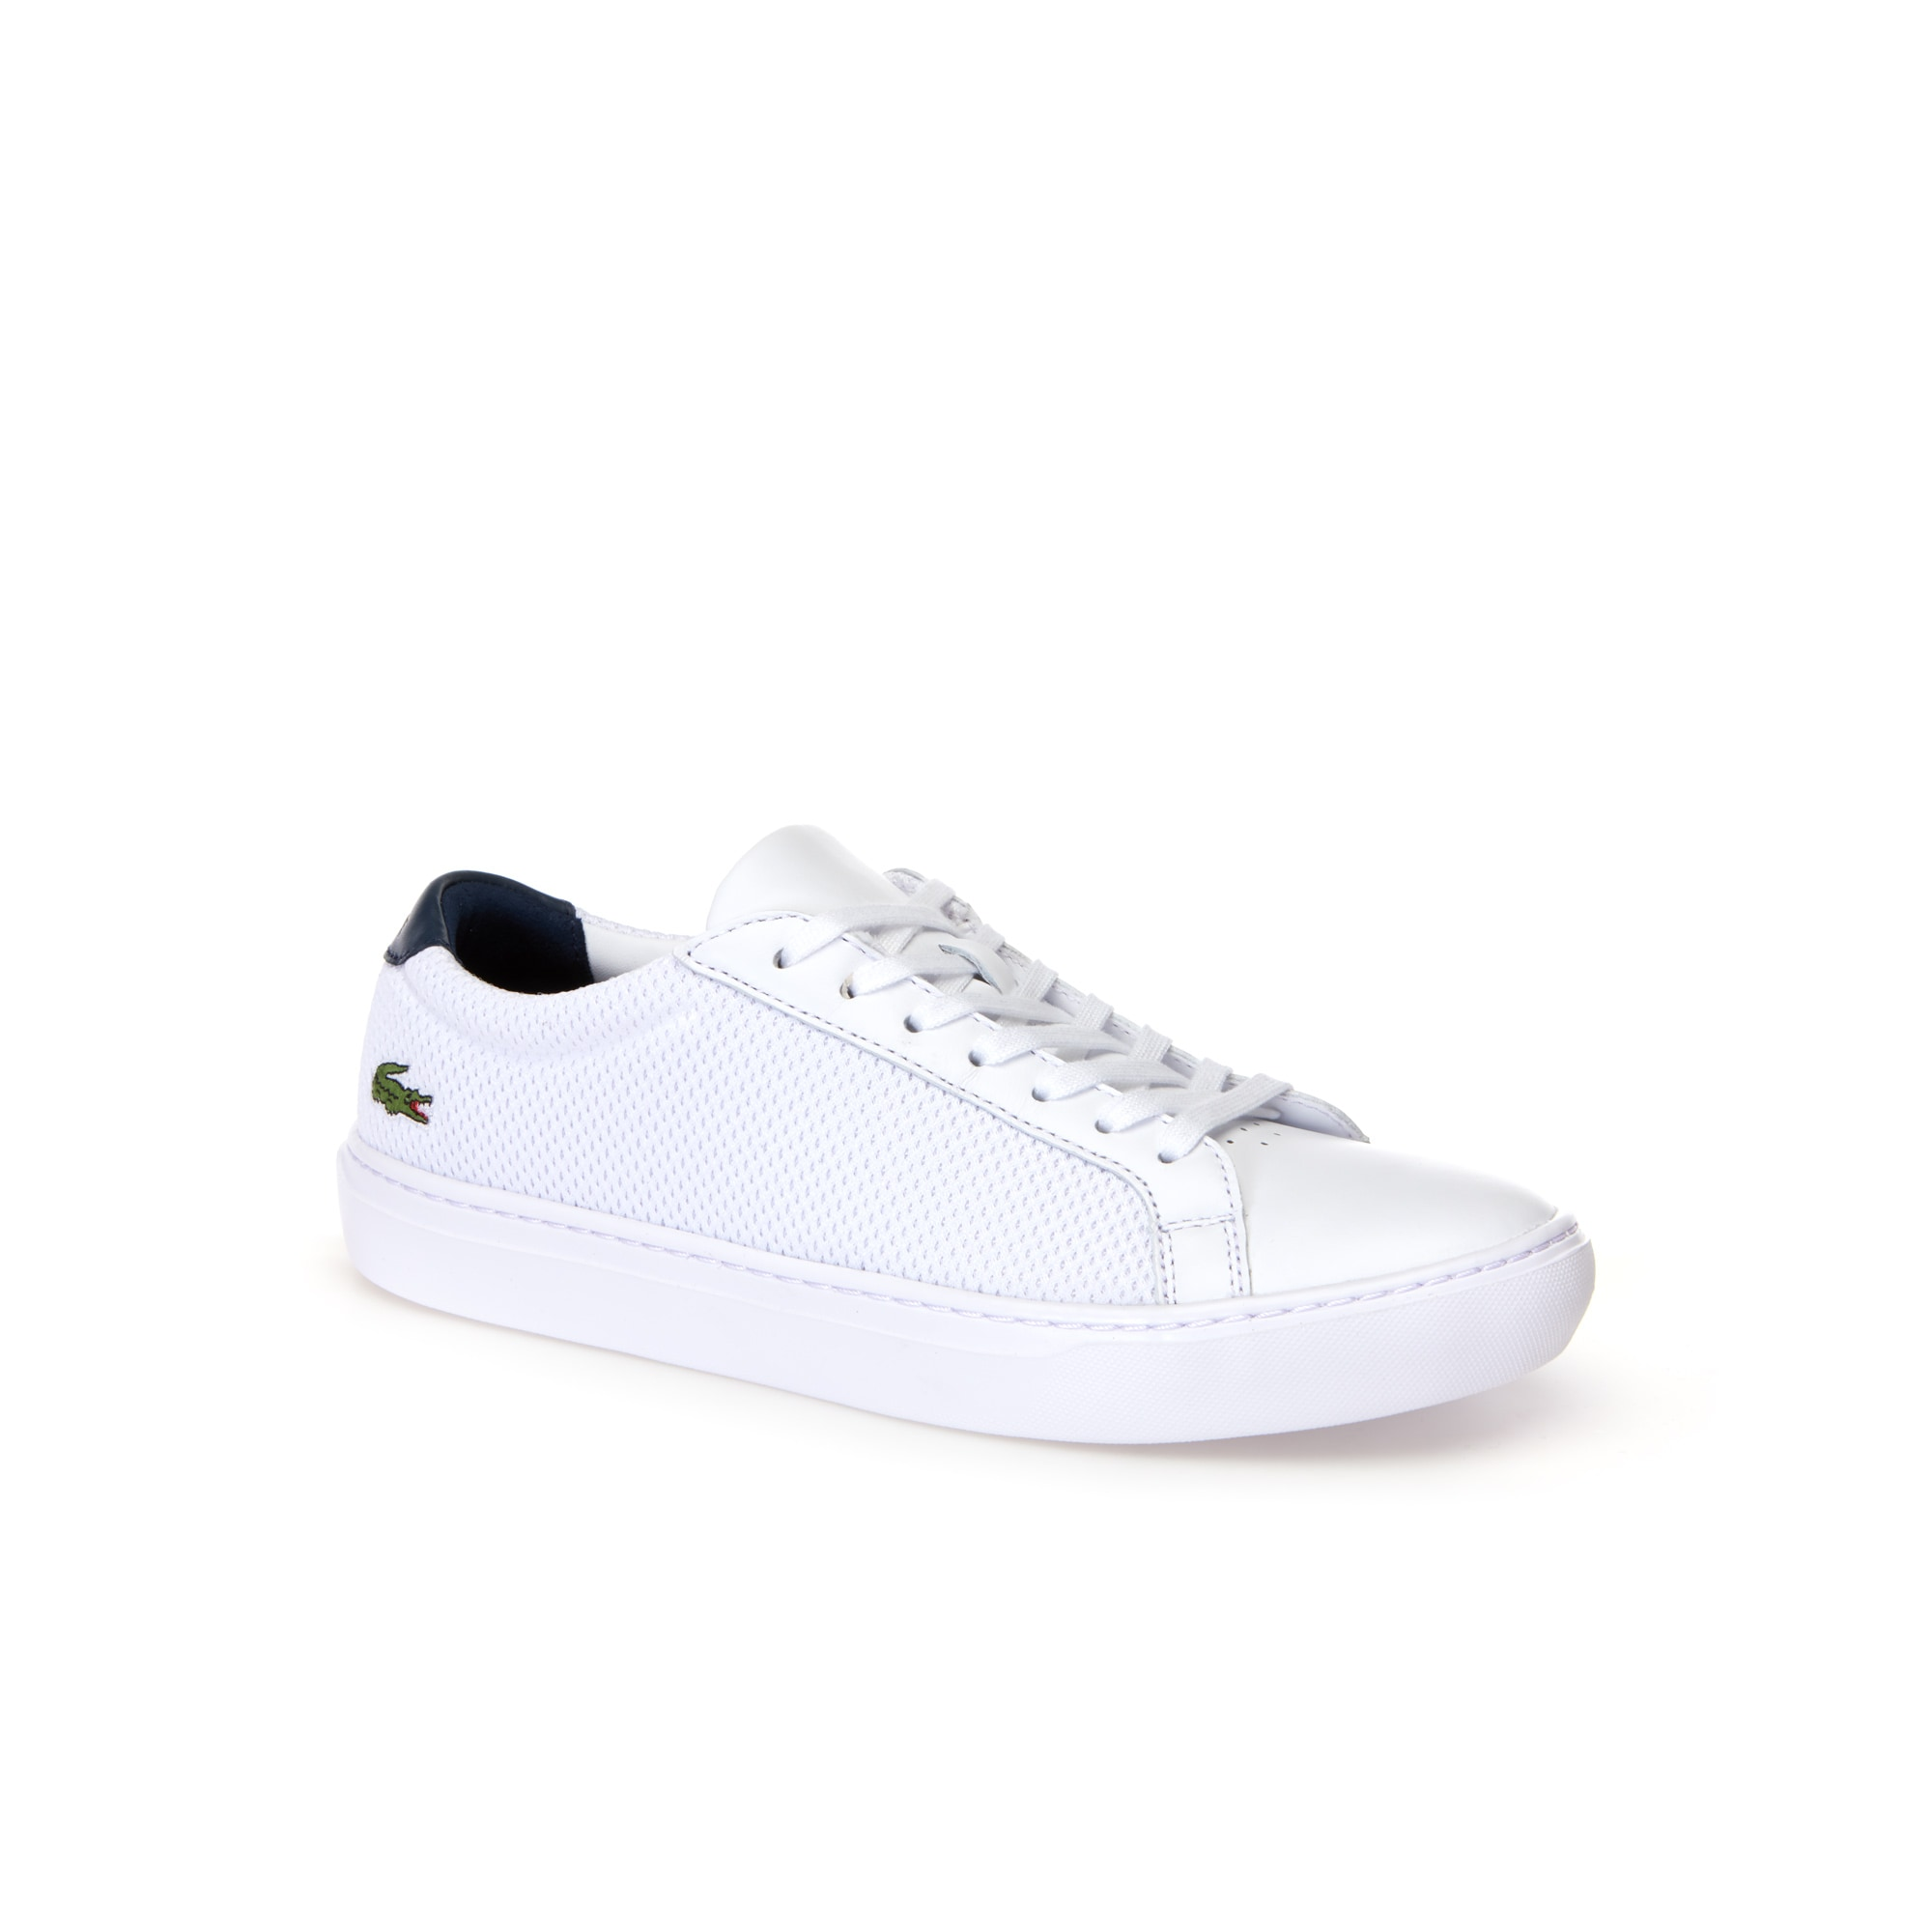 Men's L.12.12 LIGHT-WT Leather and Textile Trainers